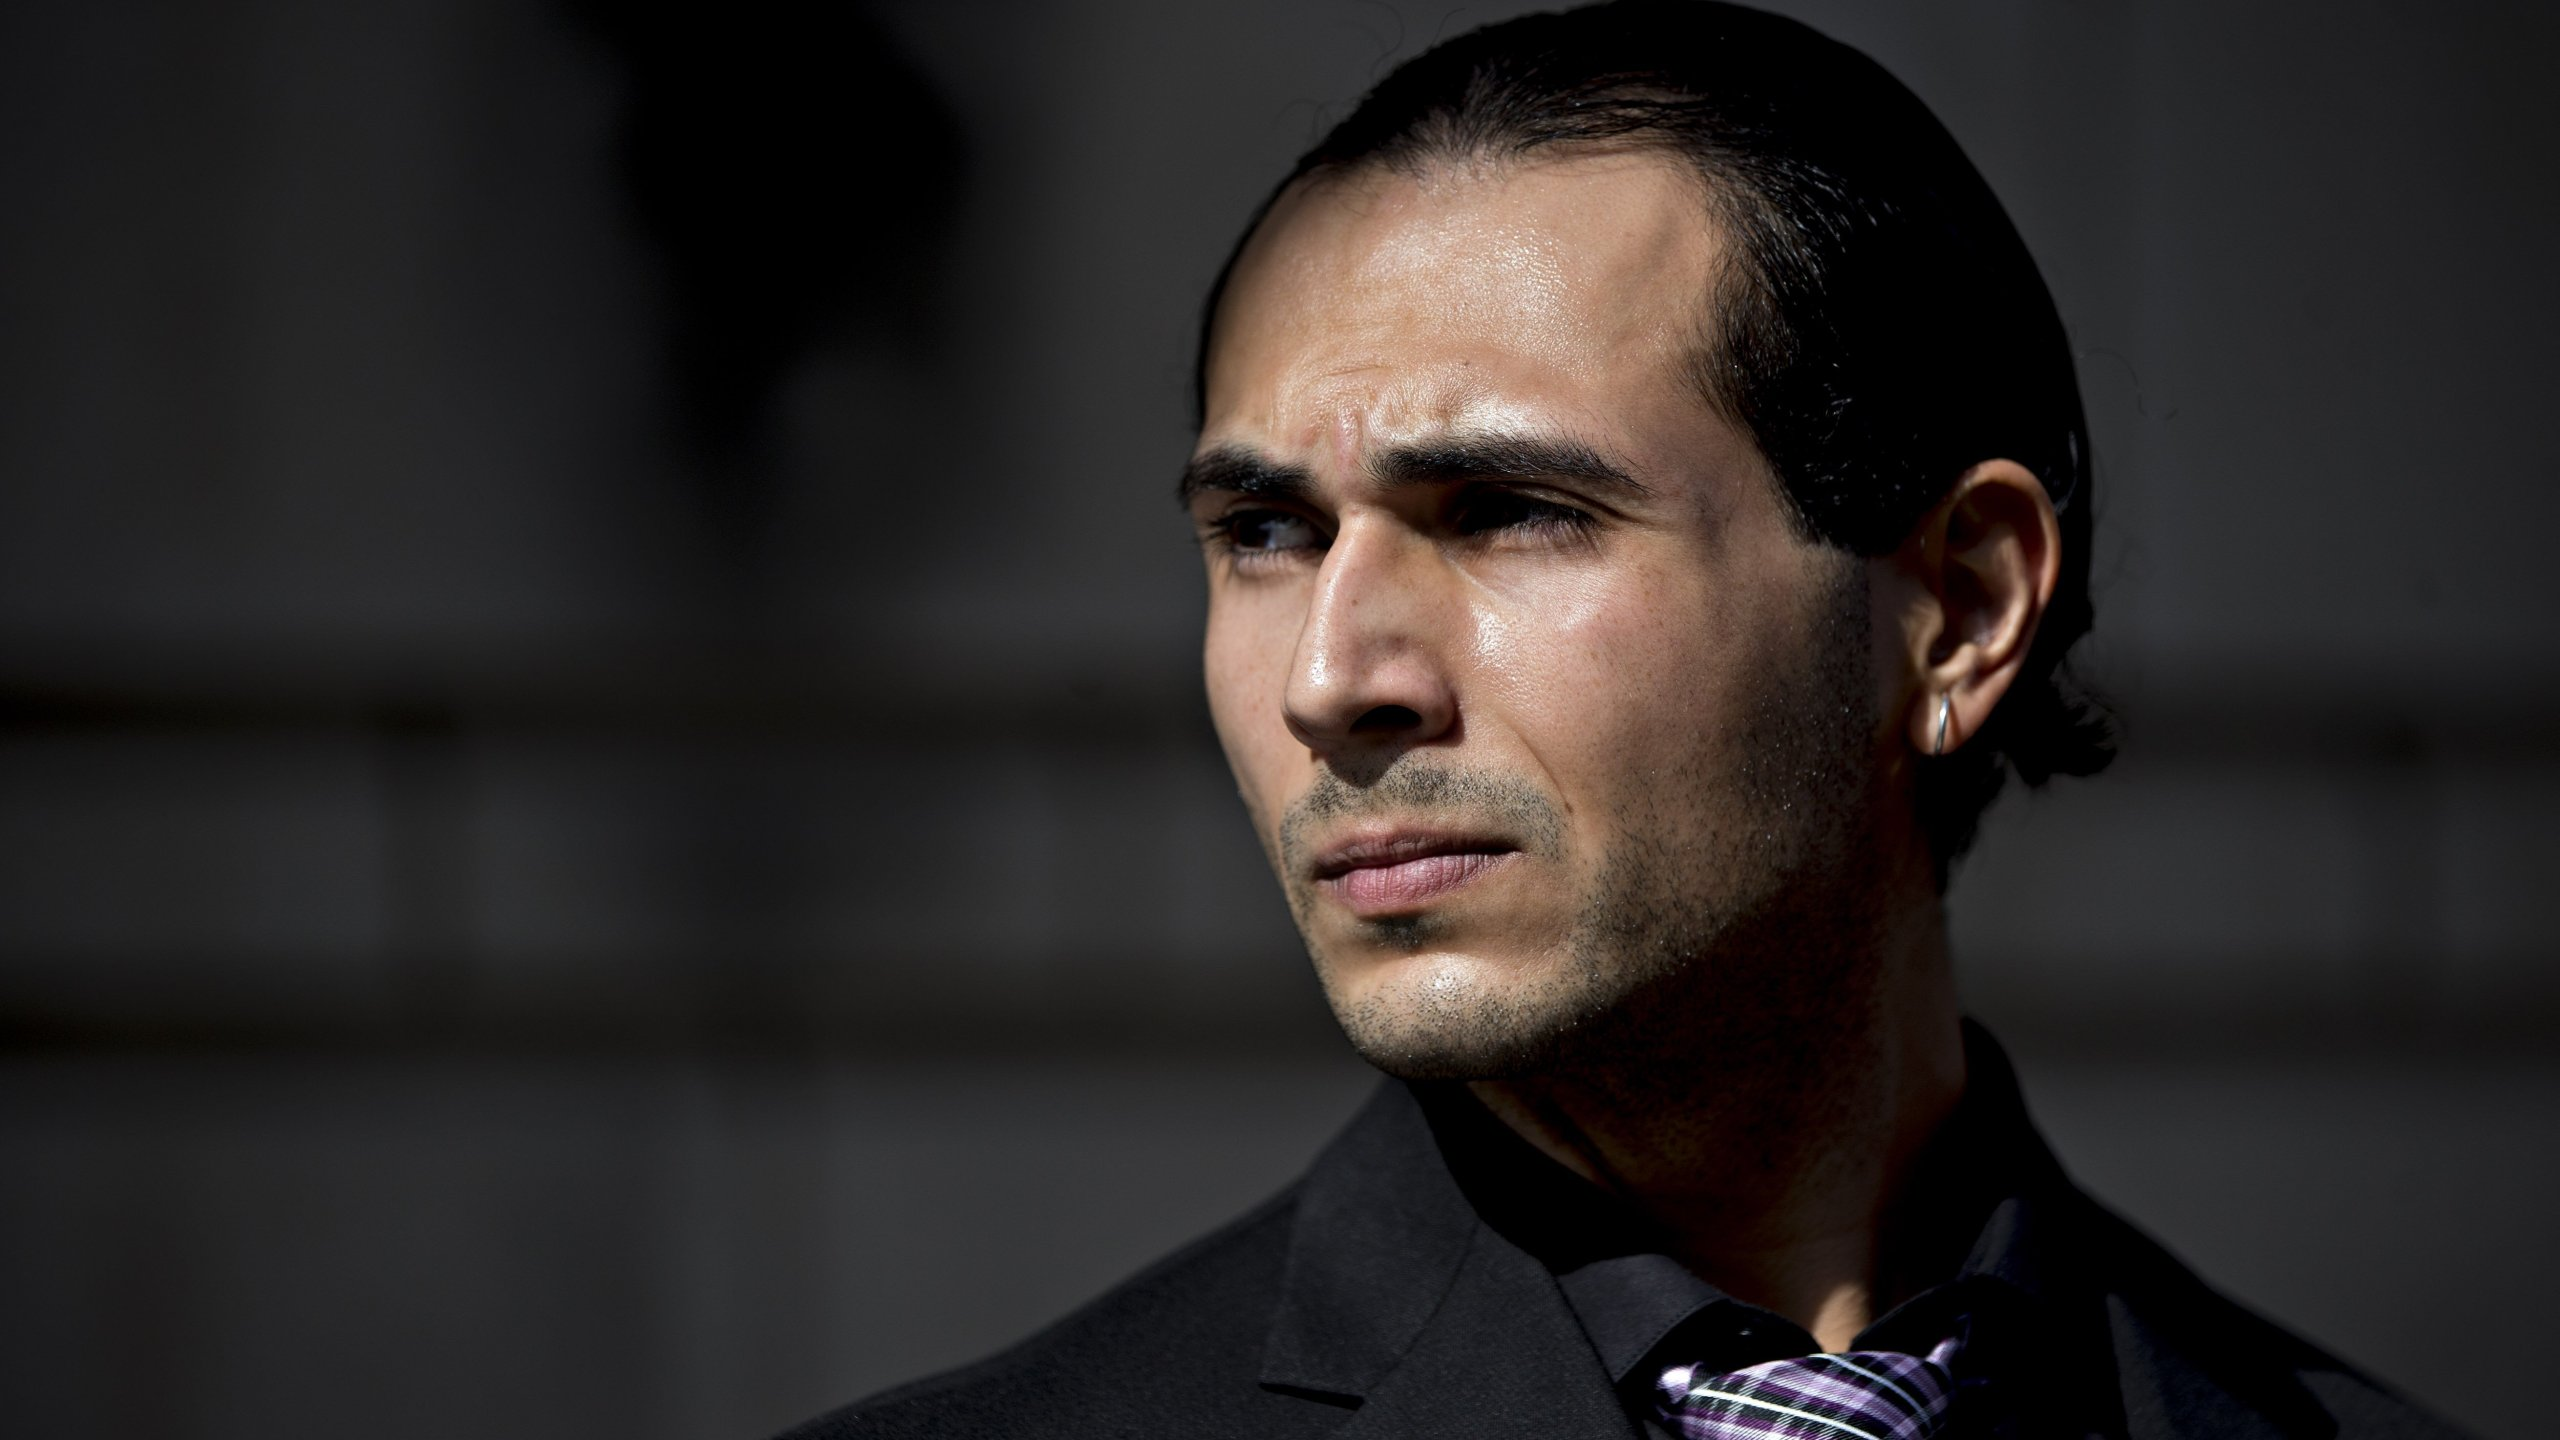 Richard Pinedo of Santa Paula, California, listens as his lawyer speaks to members of the media outside federal court after sentencing in Washington, D.C. (Credit: Andrew Harrer/Bloomberg/Getty Images)